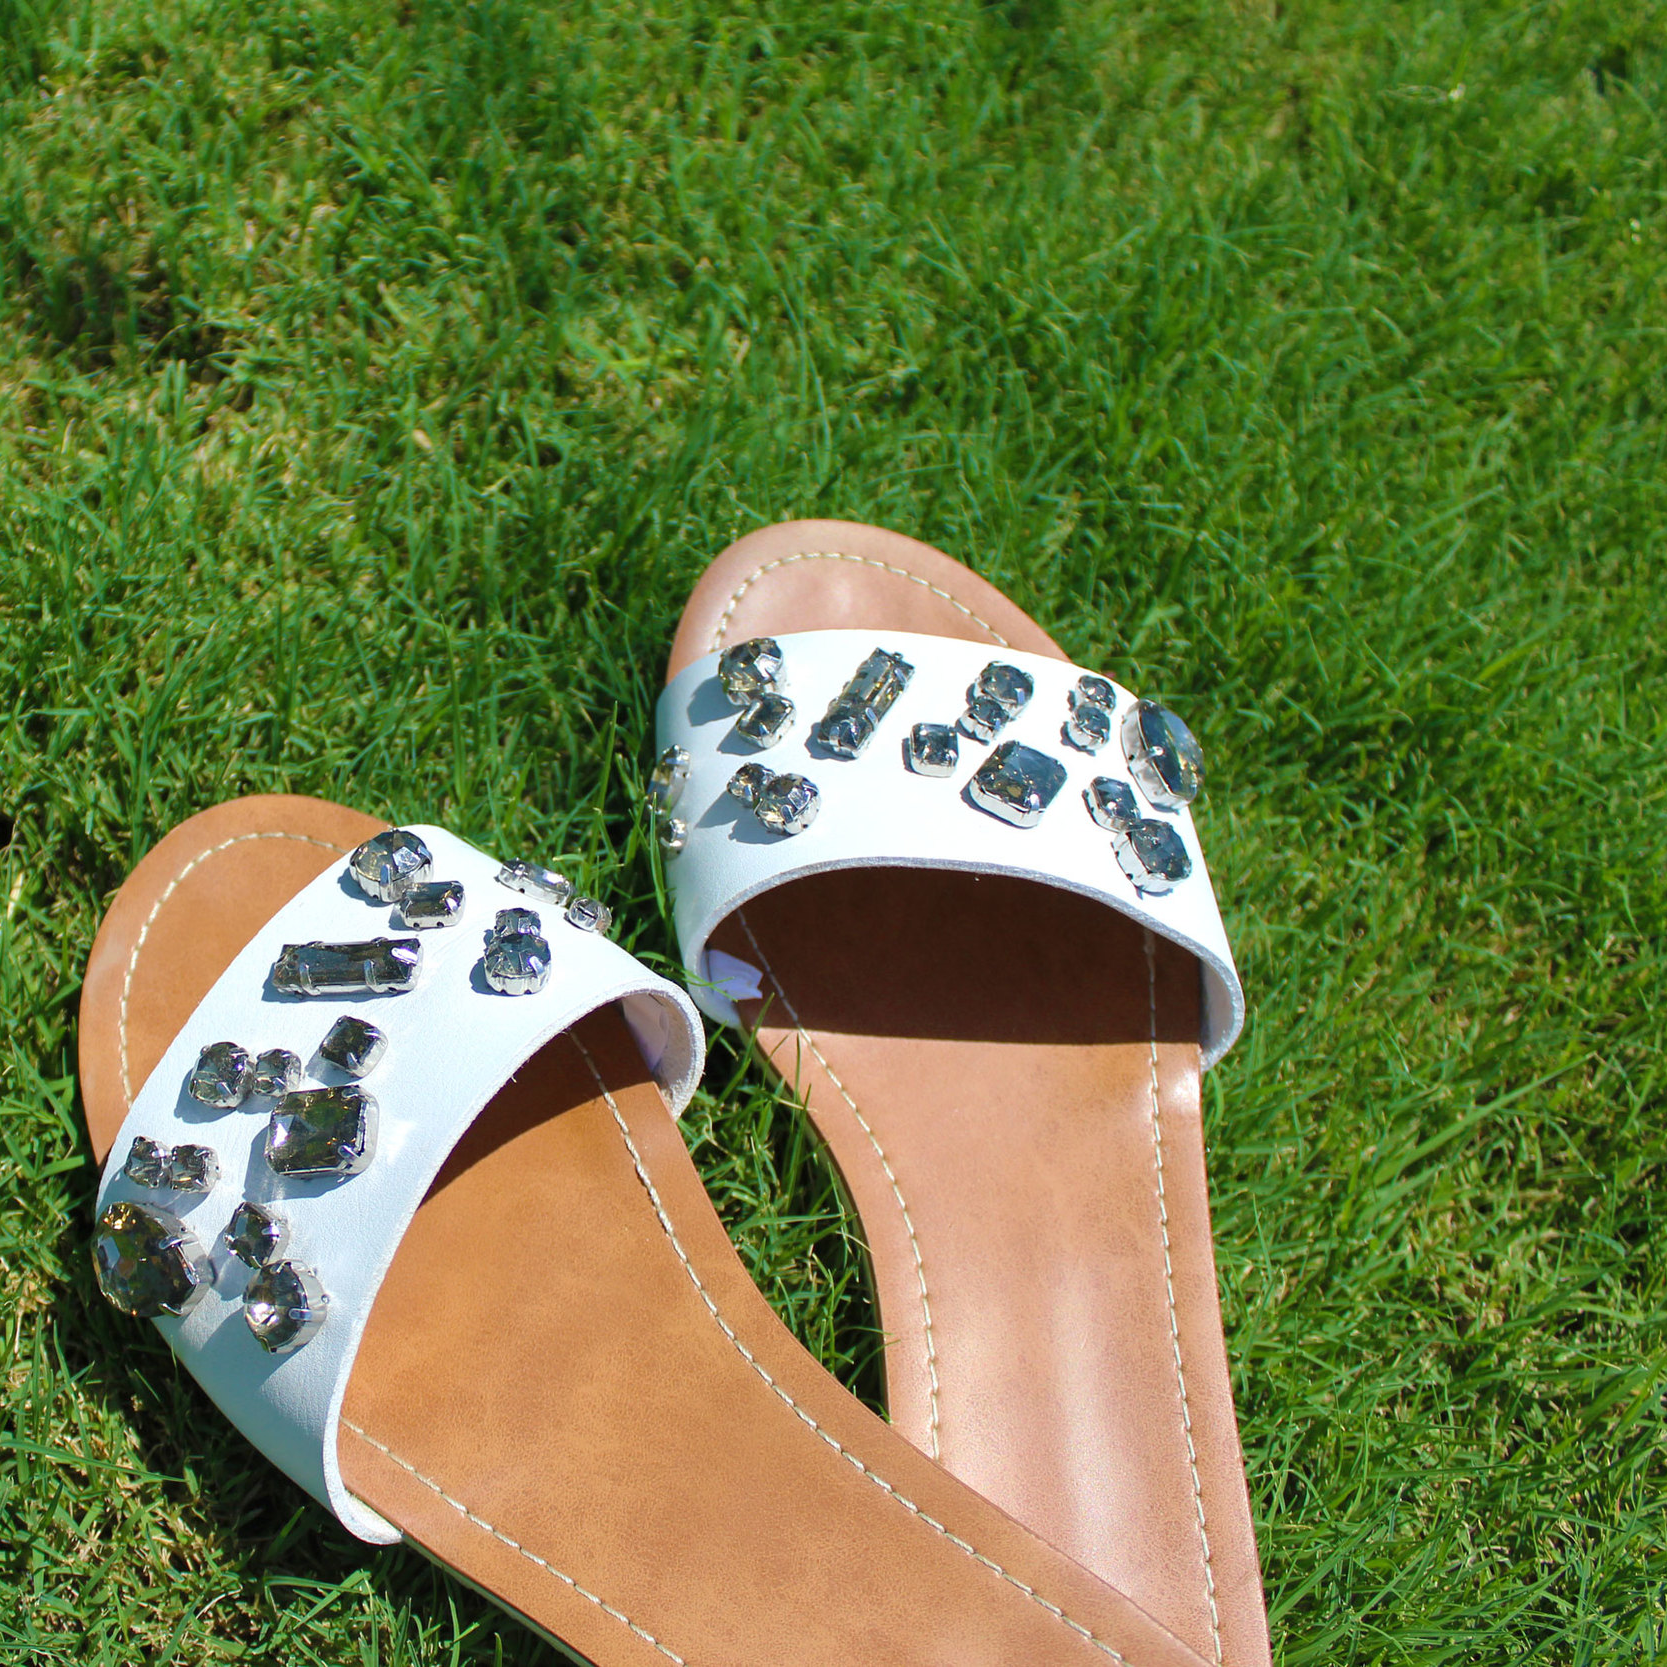 Oversized jeweled sandals in Palm Springs   Sundays and Somedays